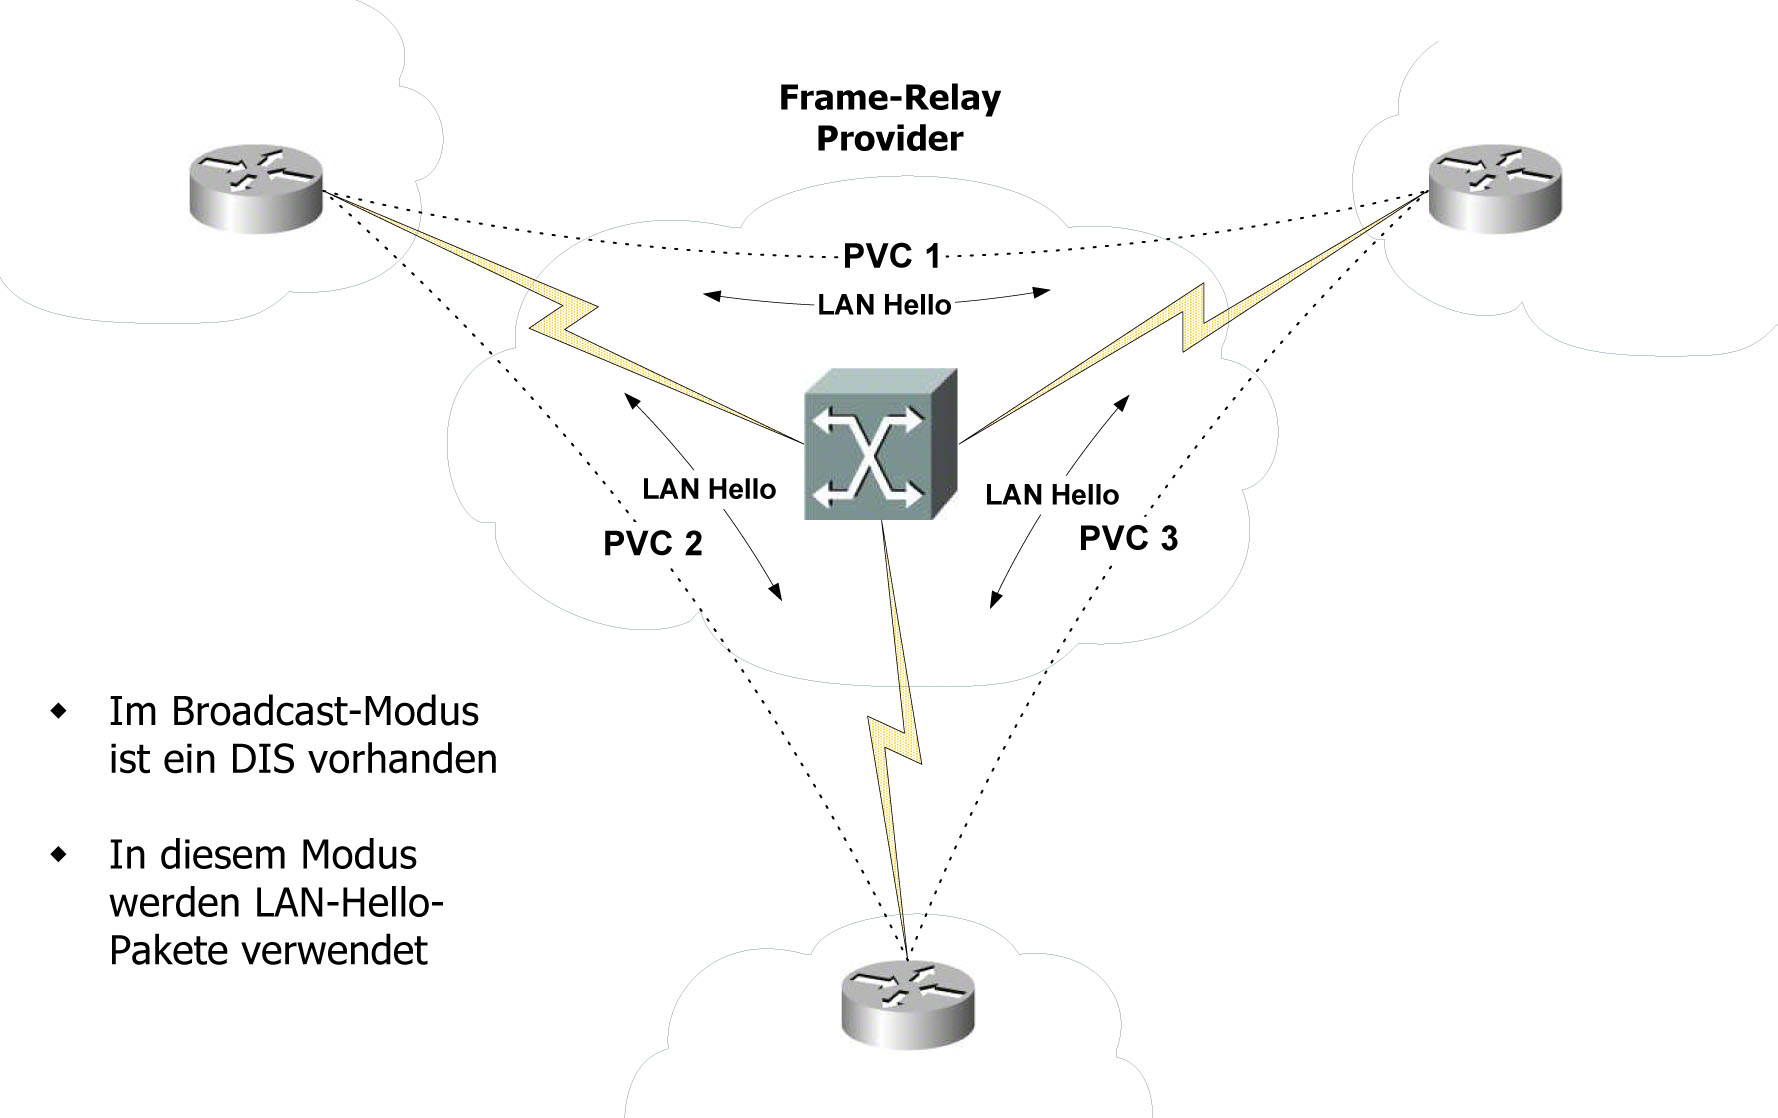 1.8.49. Frame-Relay – NBMA-Broadcast- und NBMA-Point-to-Point-Modus